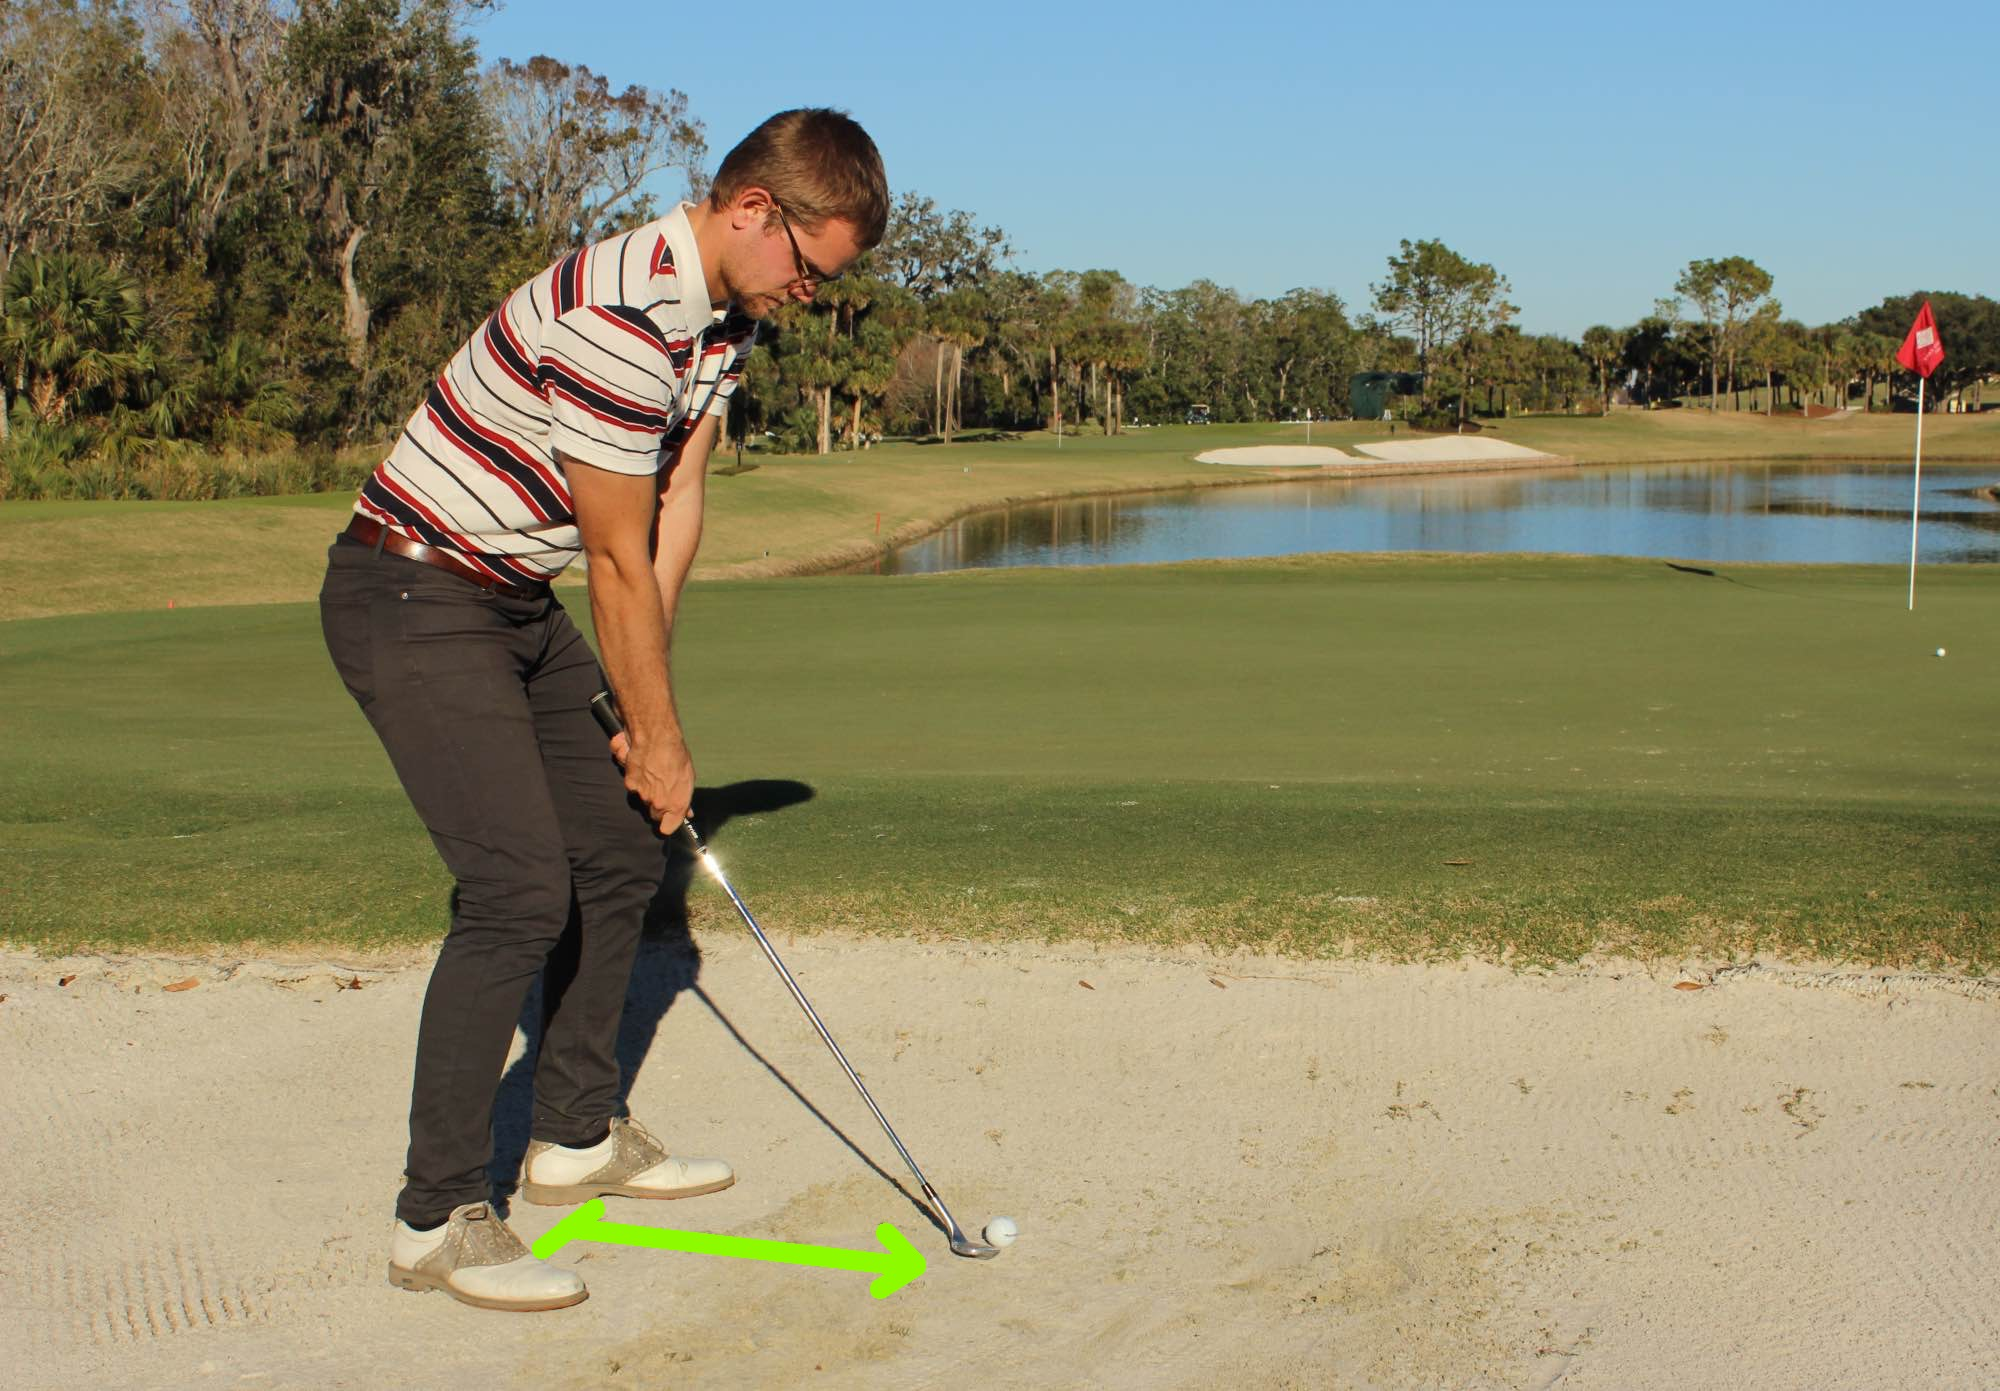 15 Most Important Bunker Shot Basics You Must Know